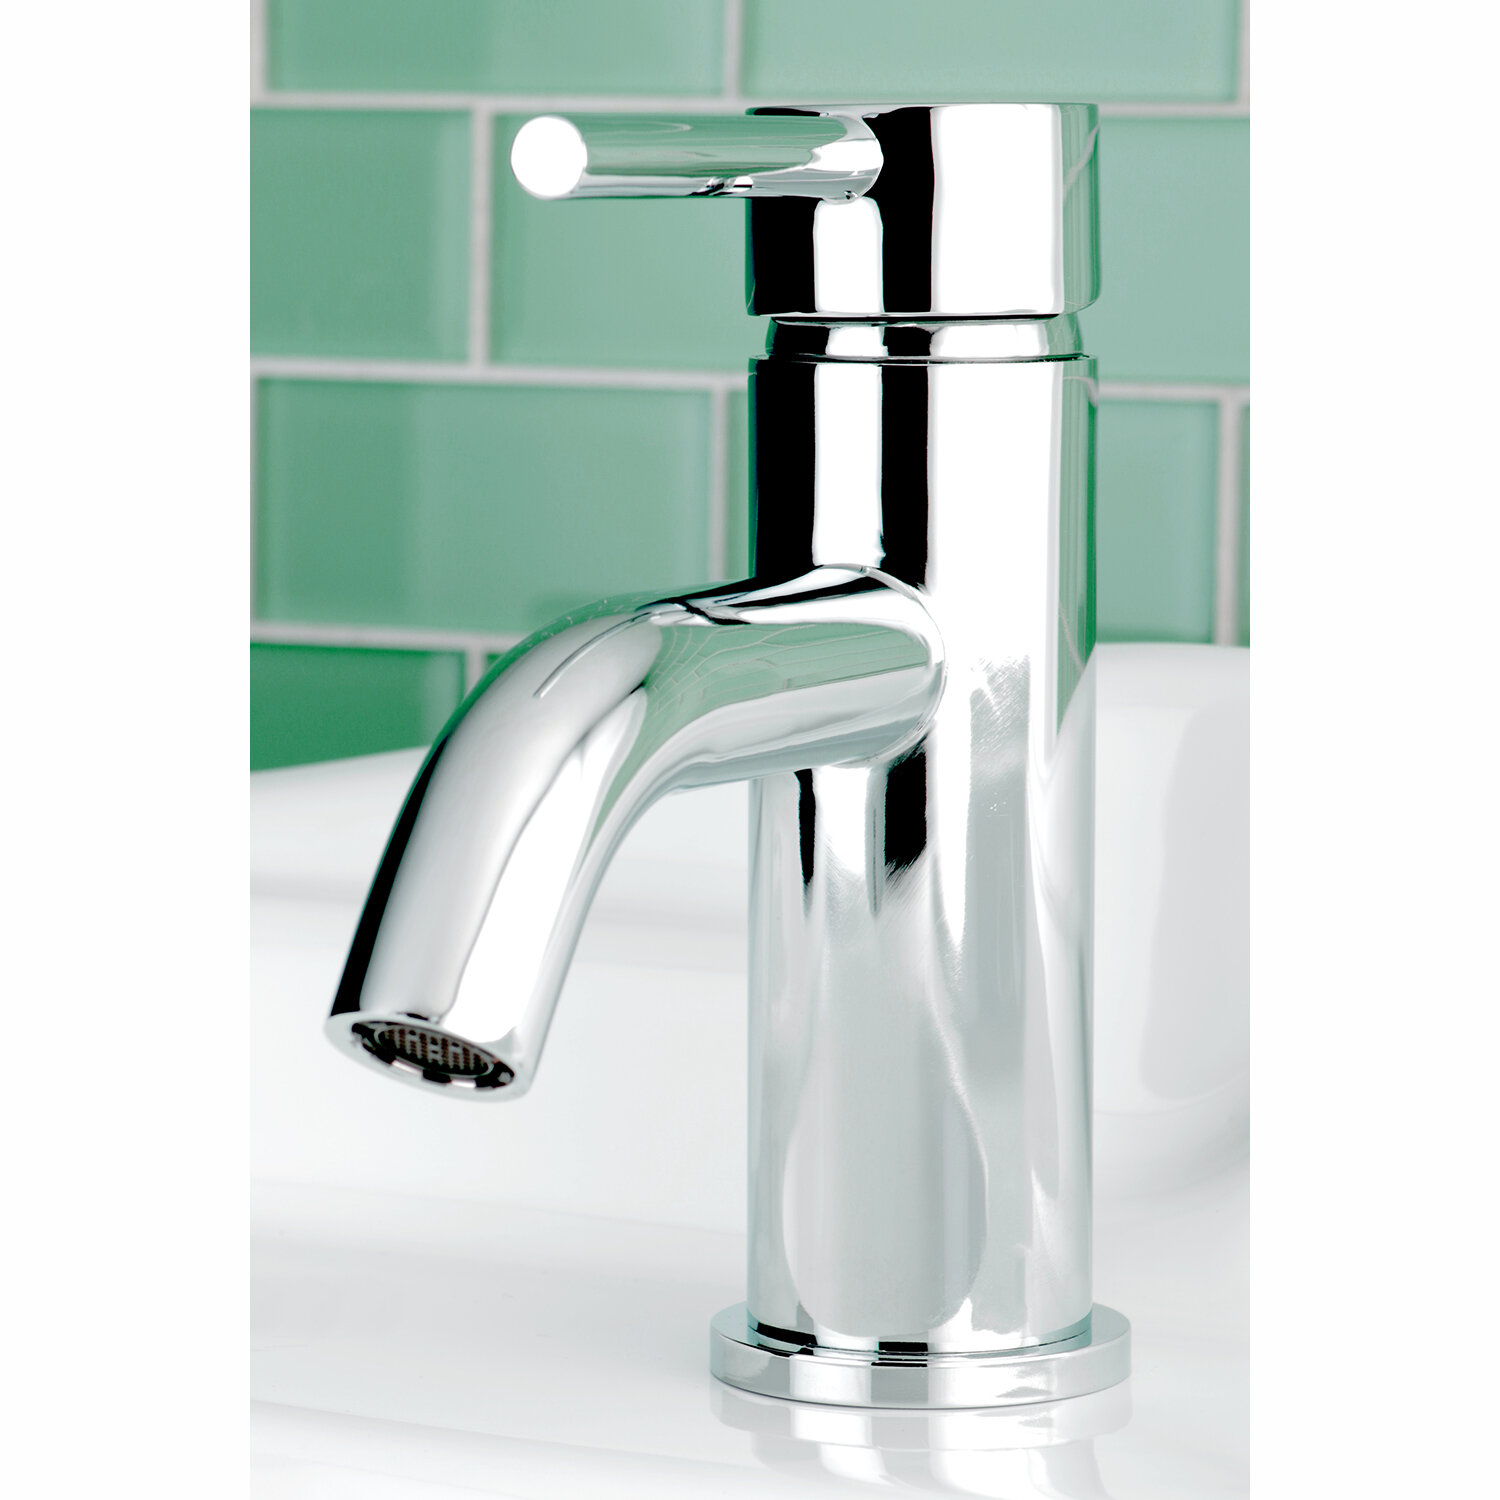 Kingston Brass Concord Single Hole Bathroom Faucet with Pop-Up Drain ...